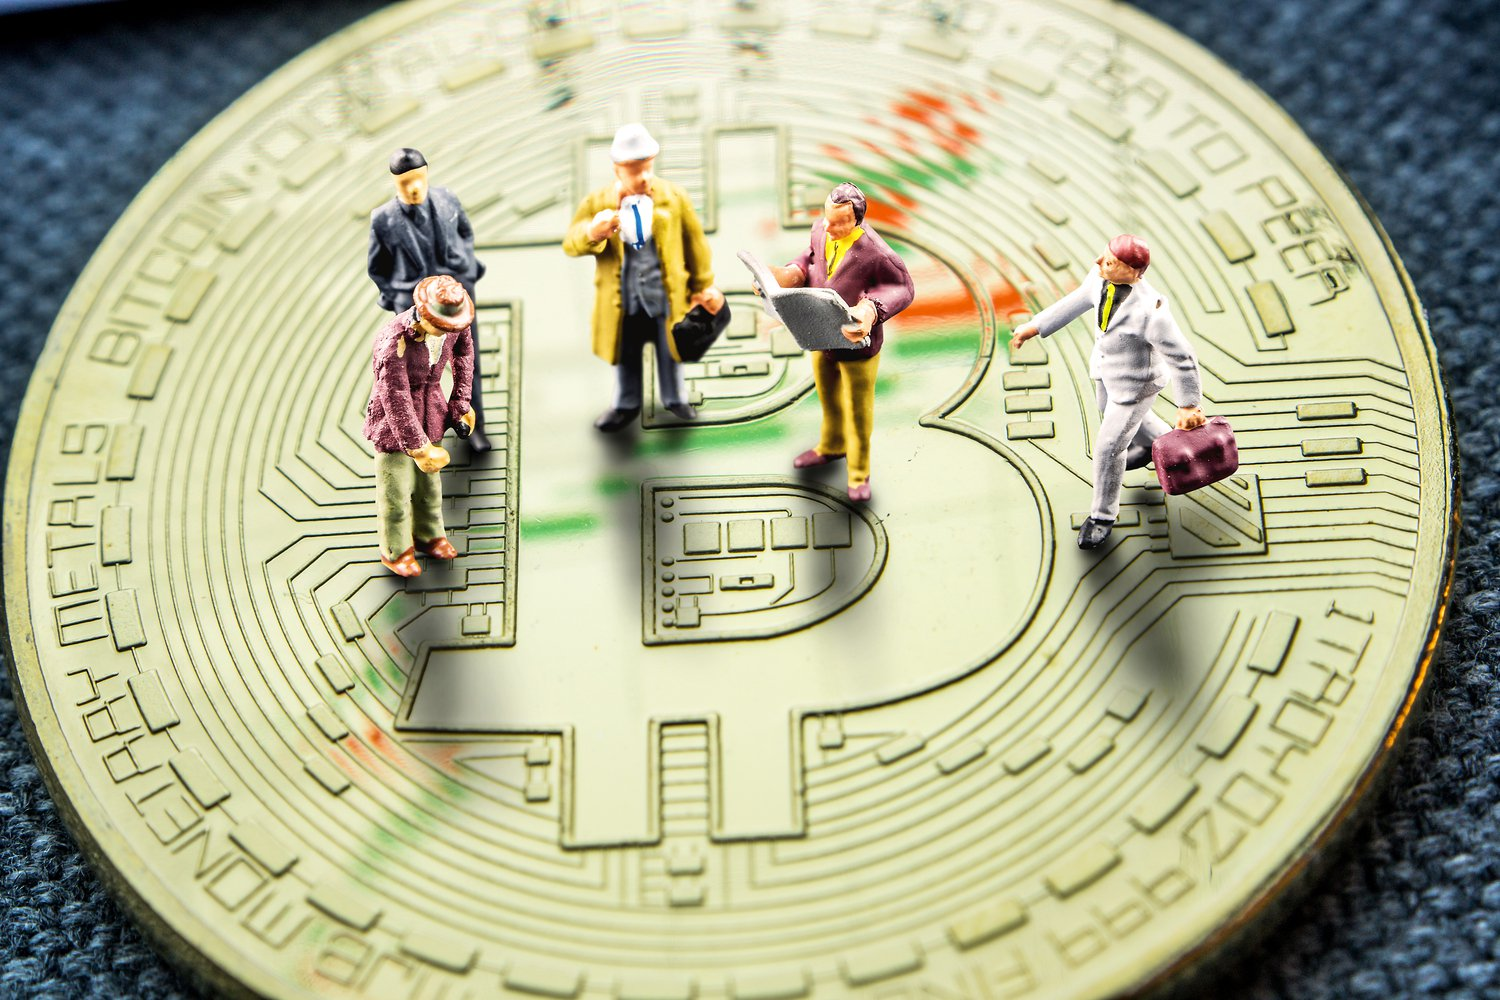 ICO Advisor Satis Claims $96K Bitcoin Price Possible in 5 Years